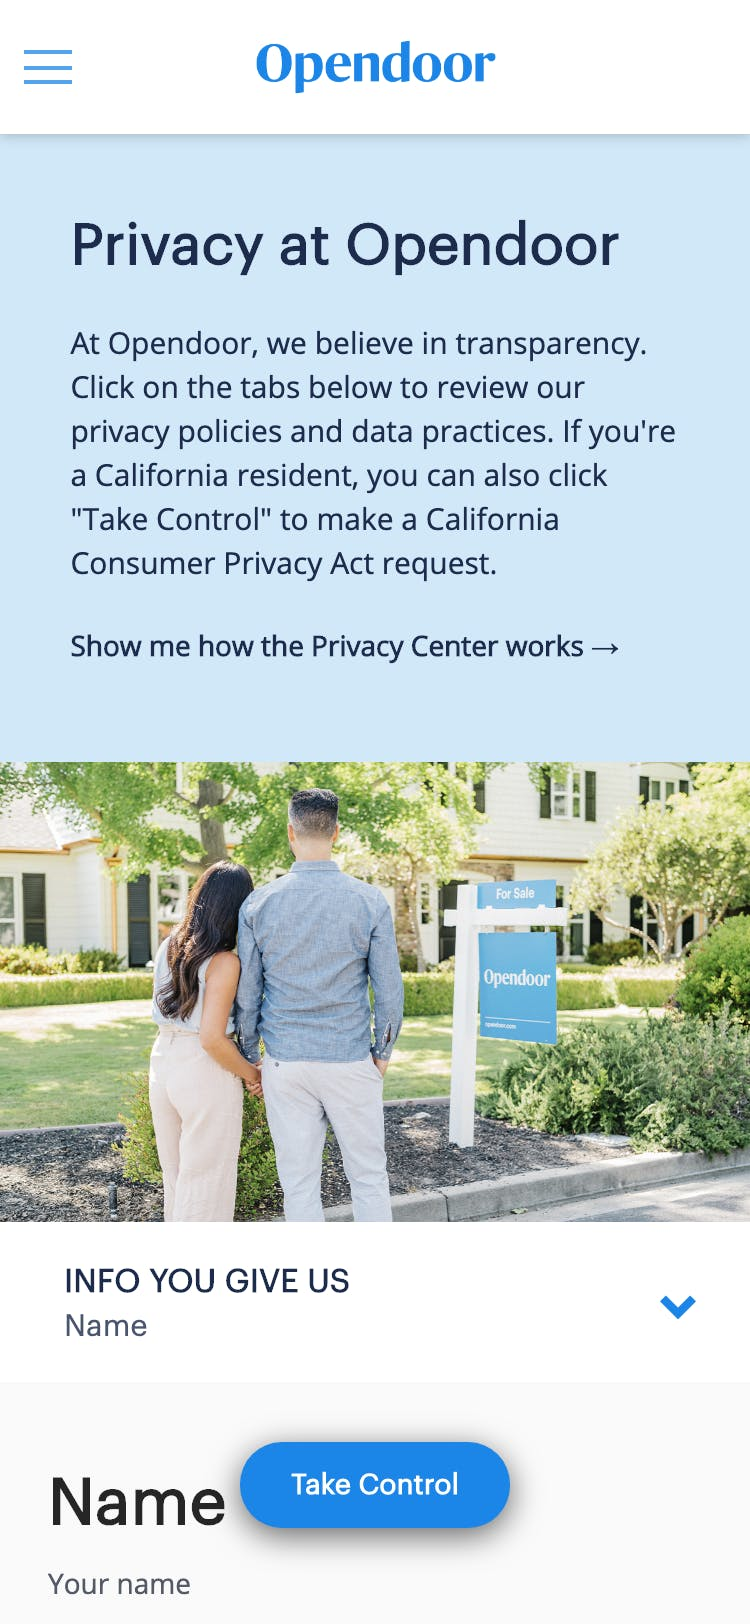 Privacy Center for Opendoor, at https://privacy.opendoor.com